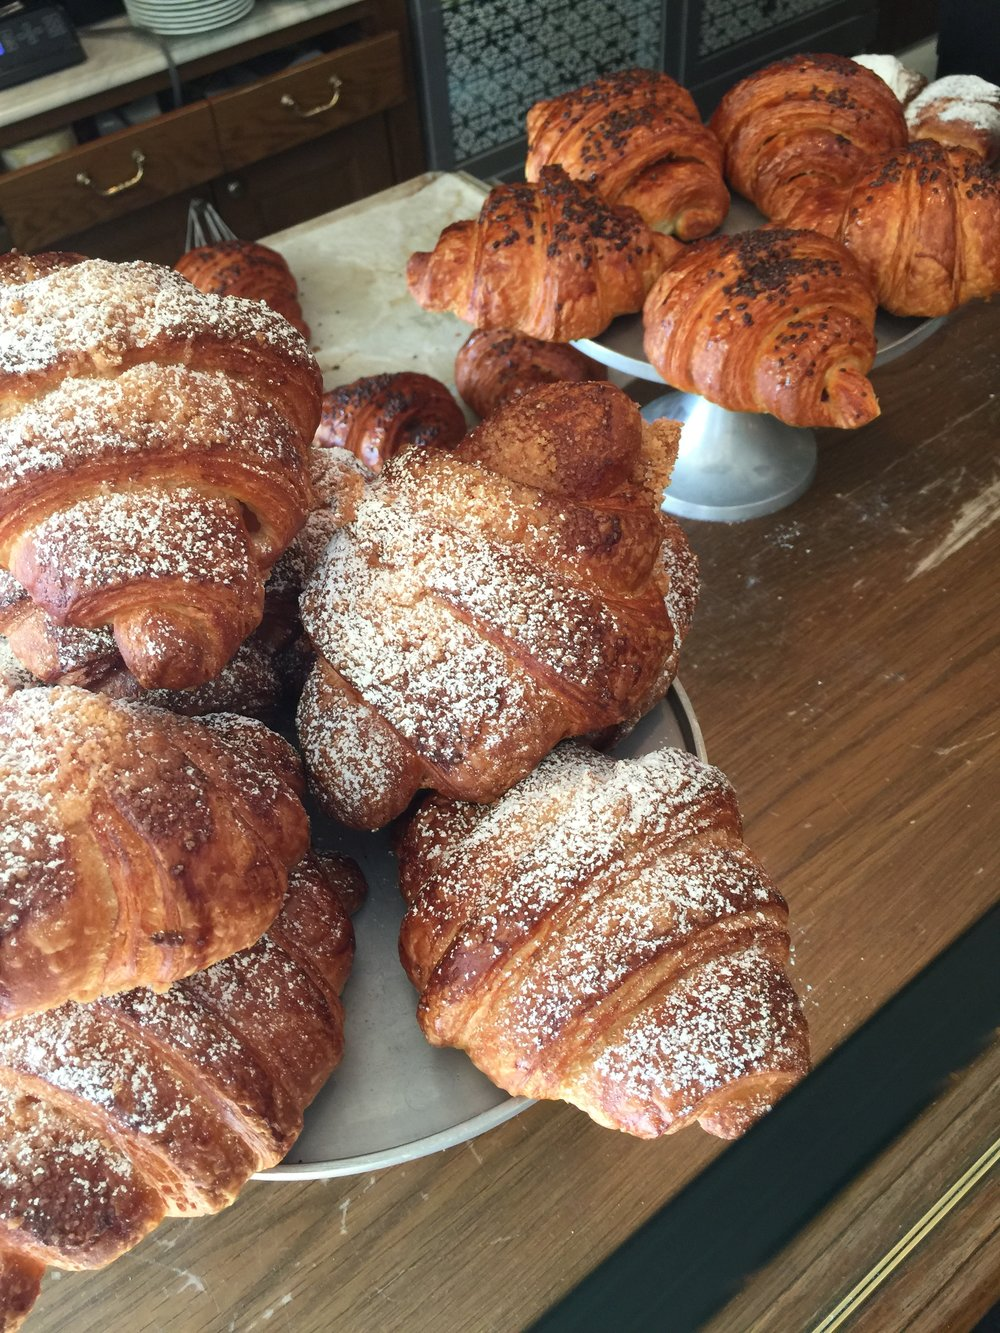 Food We Loved in Jerusalem: The beautiful croissants at Cafe Kadosh